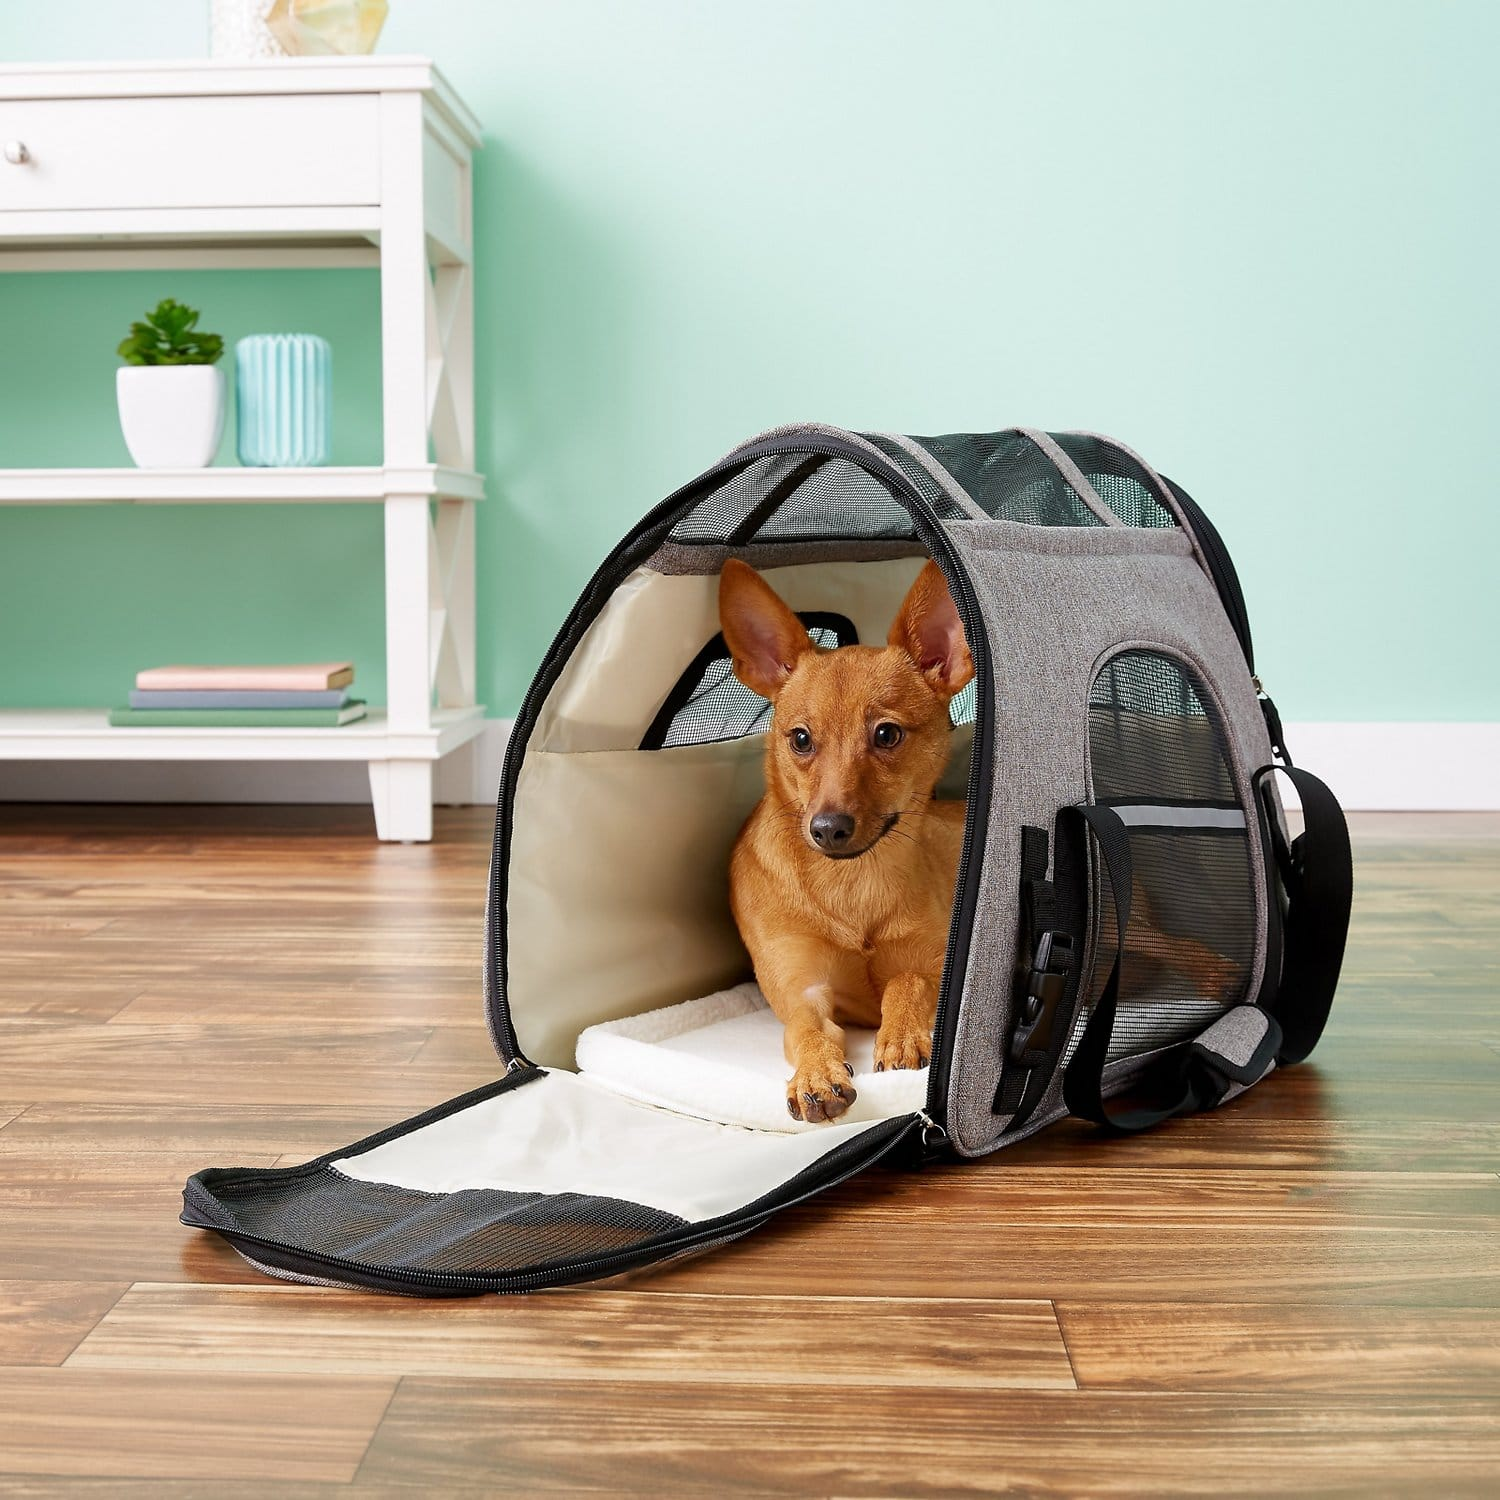 Mr. Peanut's Soft-Sided Airline-Approved Dog & Cat Carrier Bag (Platinum Gray) $14.70 + Free Shipping $49+